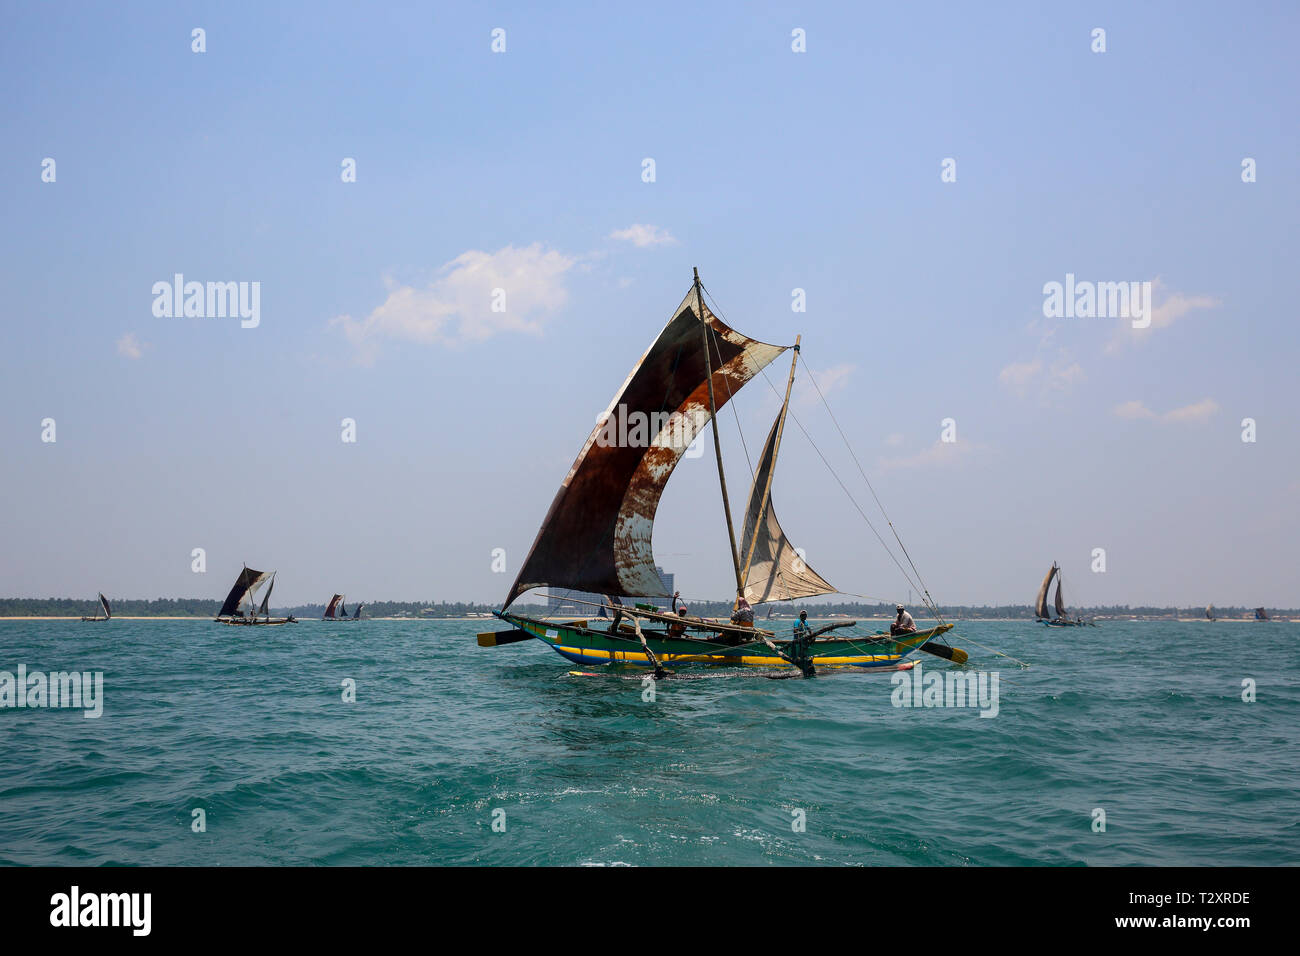 Sri Lankan traditional fishing catamarans in Laccadive Sea at Negombo, Sri Lanka Stock Photo